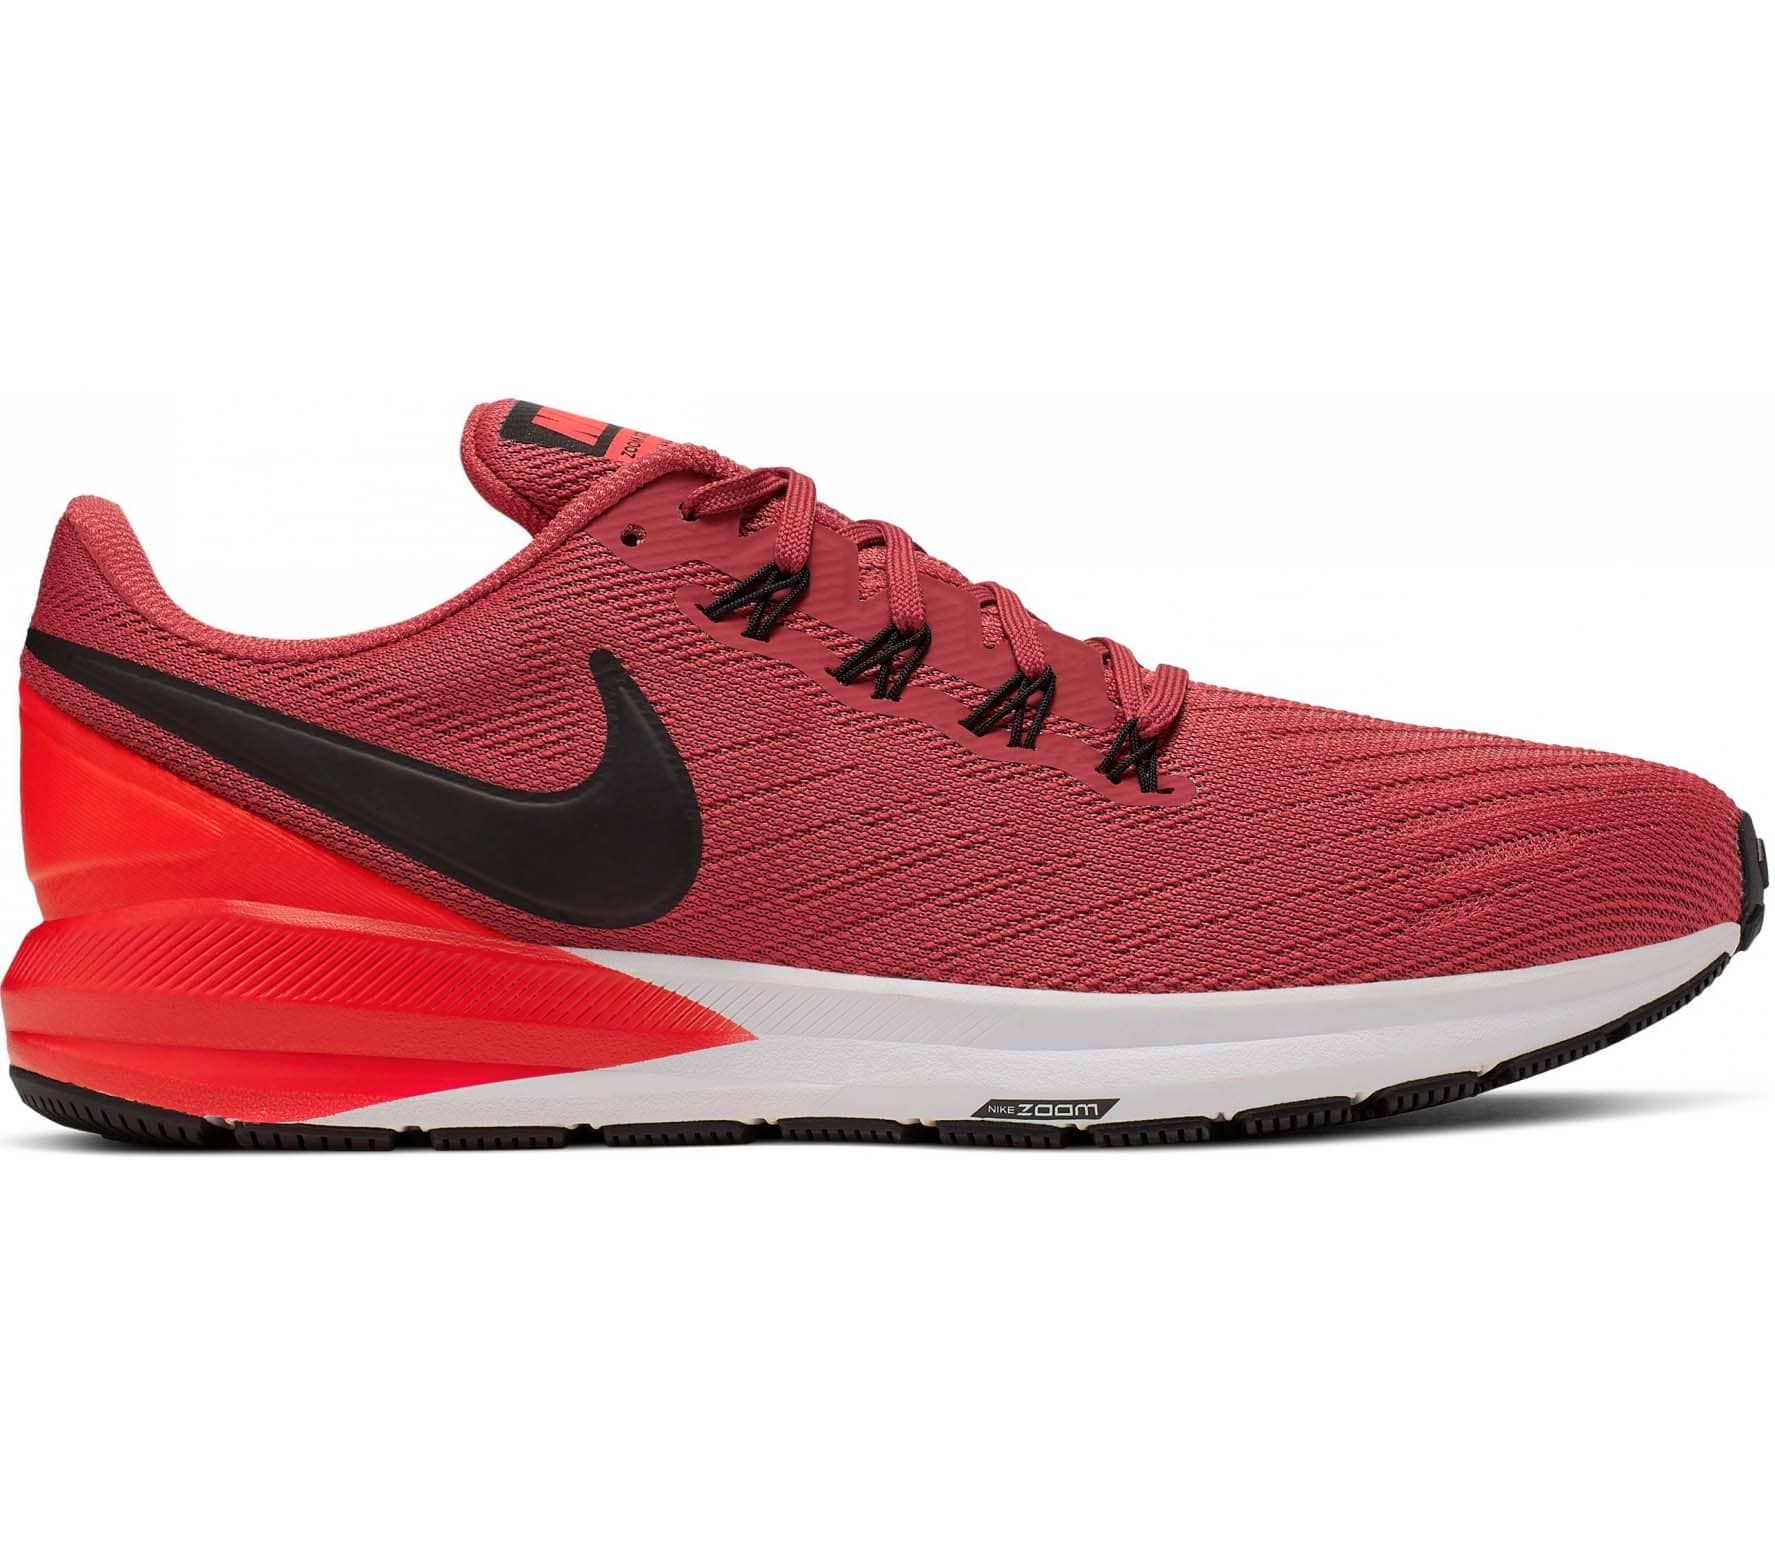 sale retailer c3304 787e1 Nike Air Zoom Structure 22 Men Running Shoes red